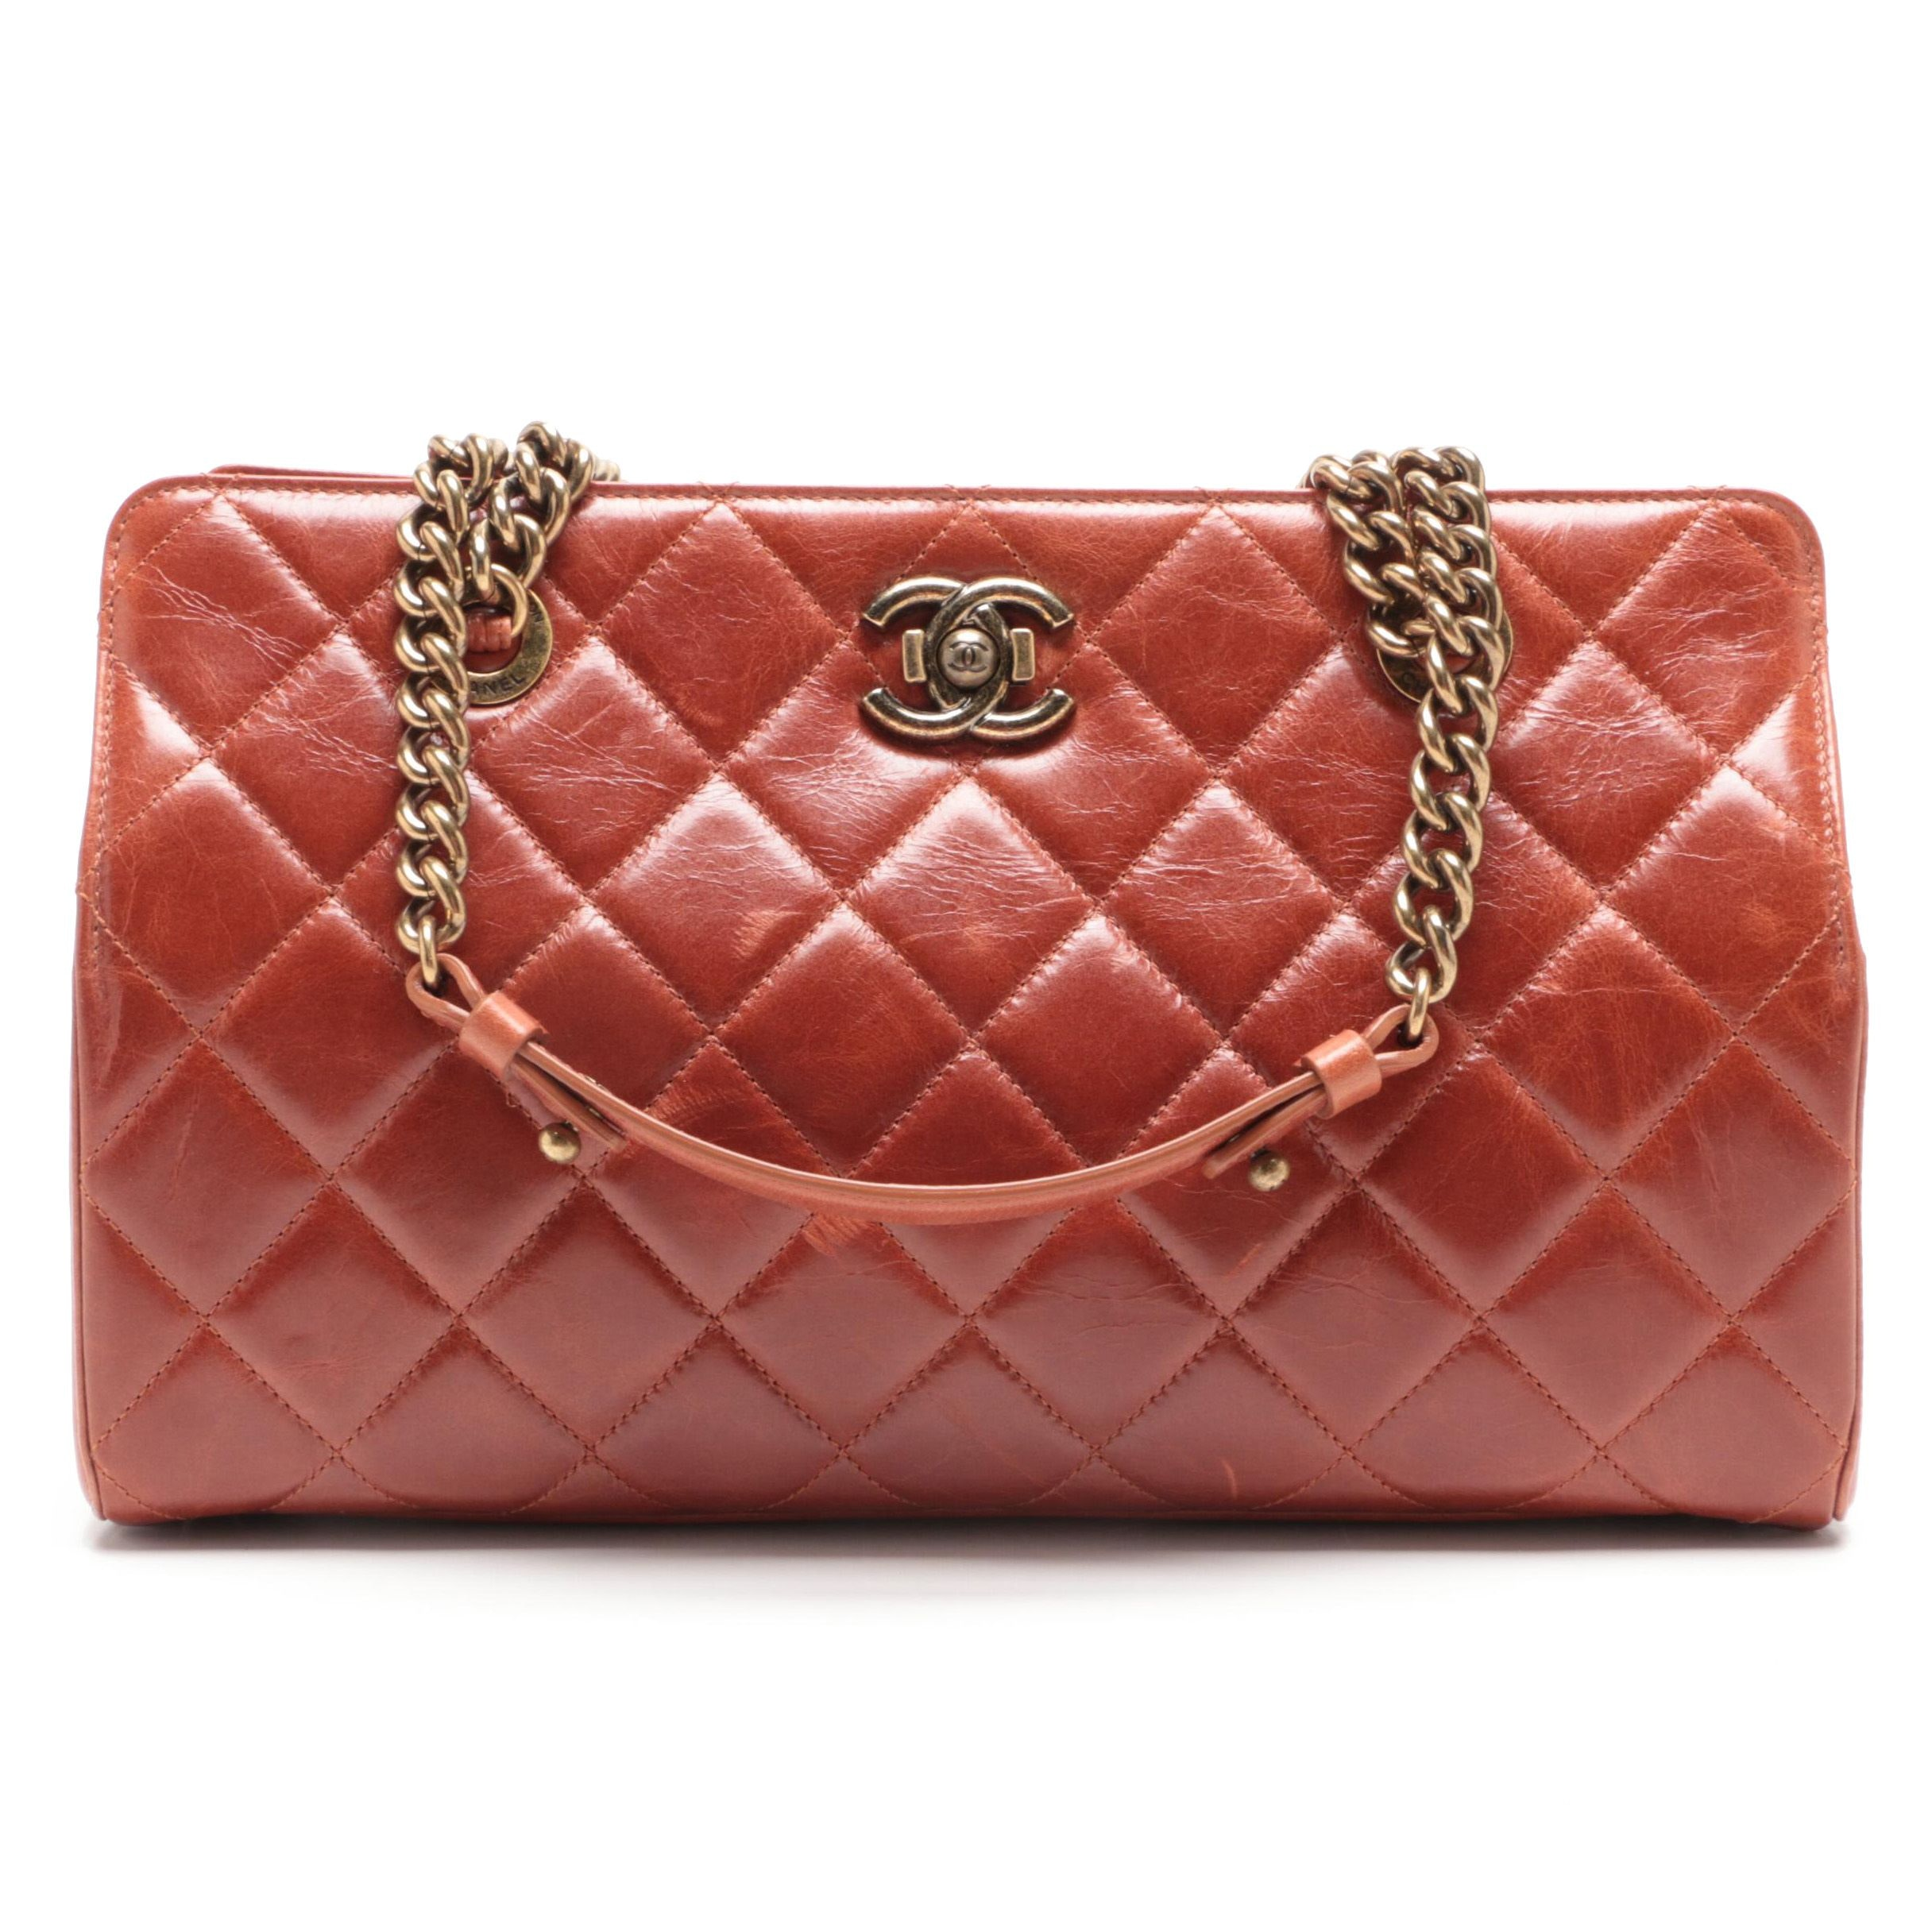 Chanel Brown Quilted Lambskin Leather Satchel